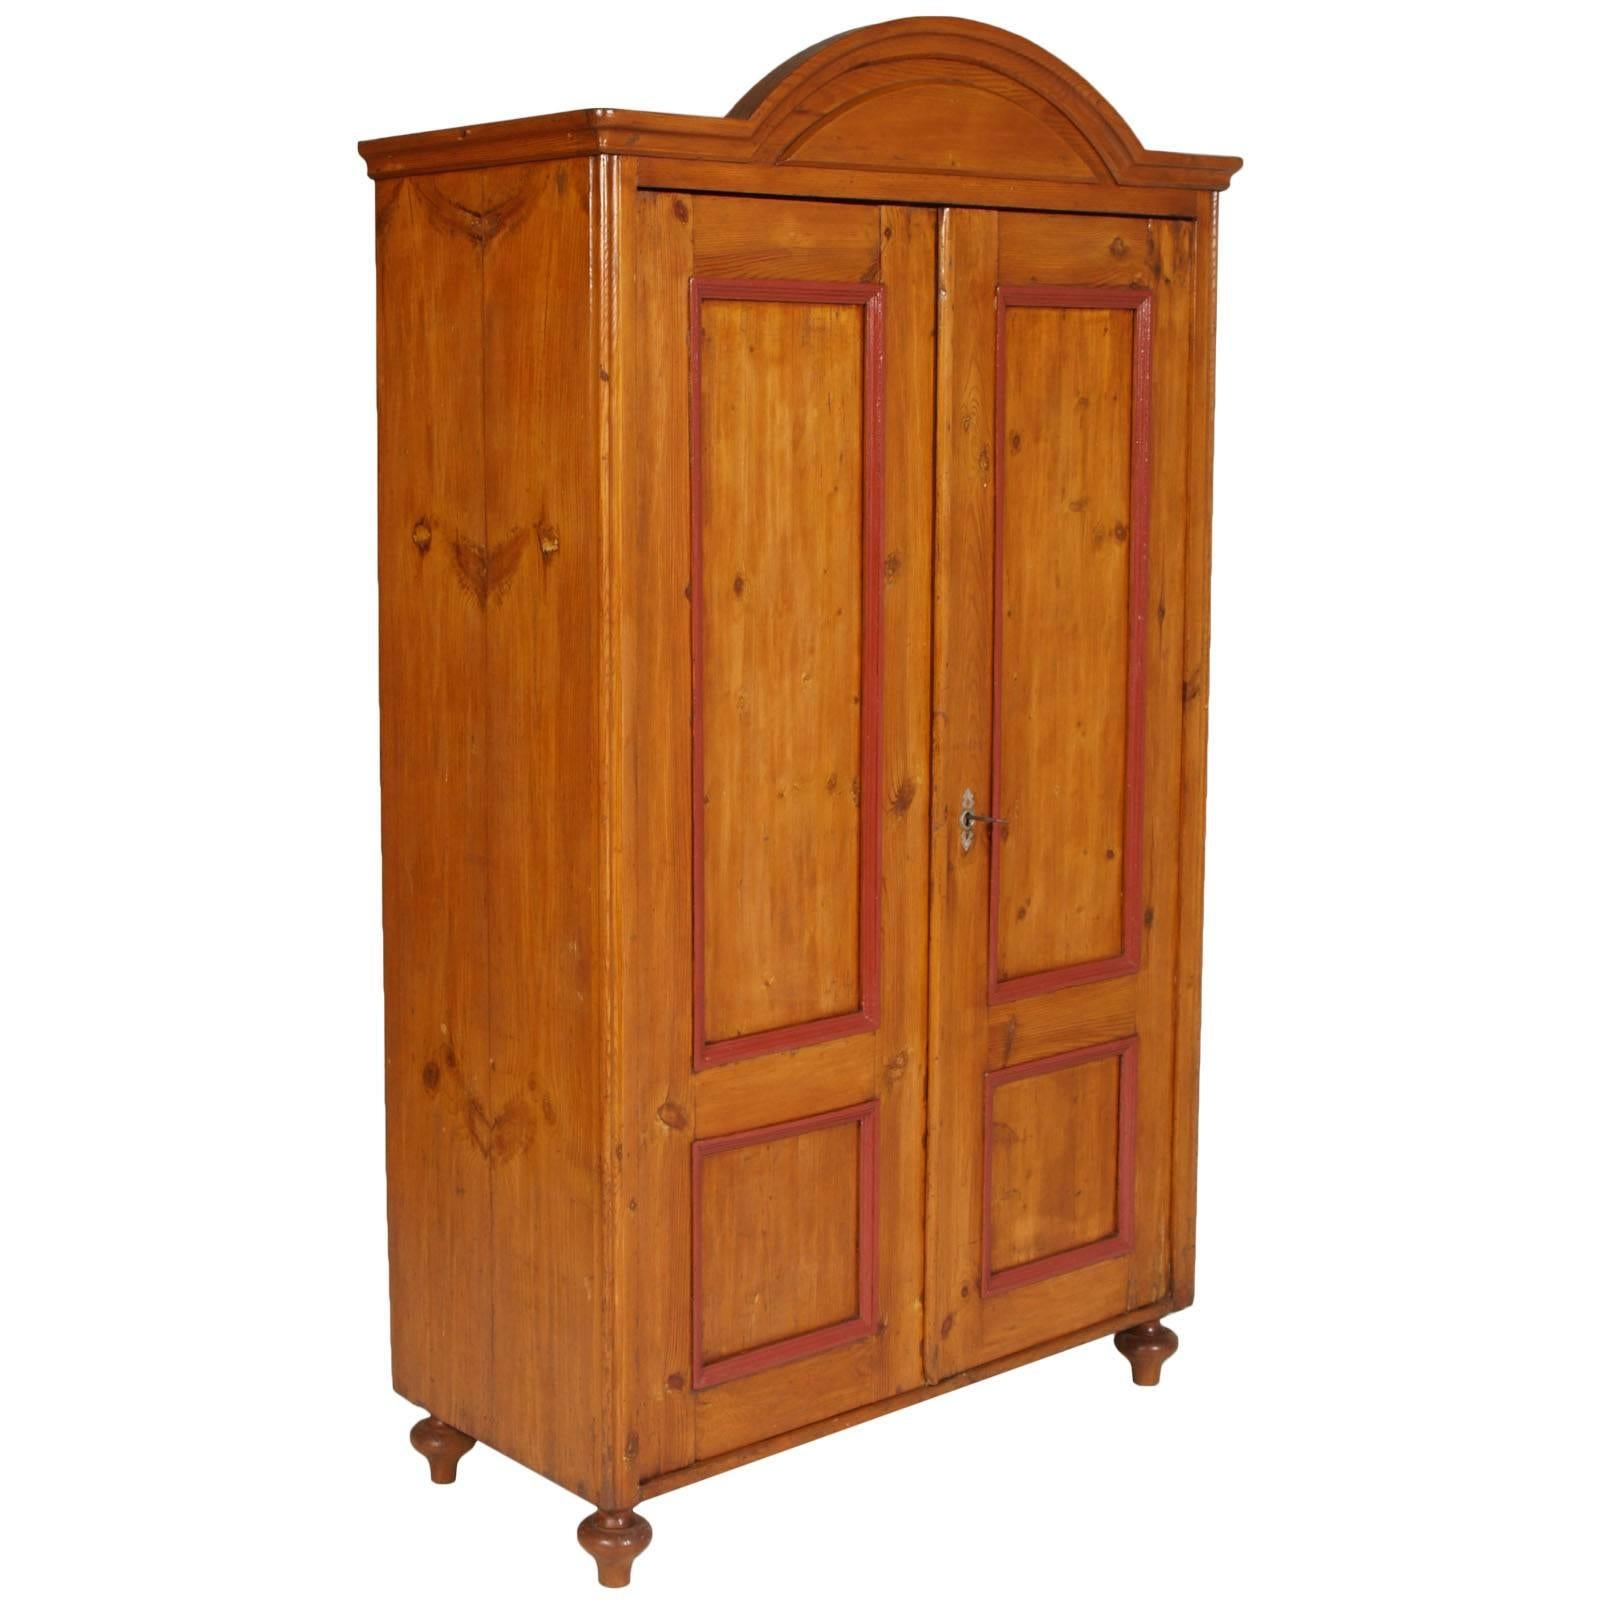 Workstead Wardrobe In Beech With Solid Wood Faceted Doors For Sale At  1stdibs